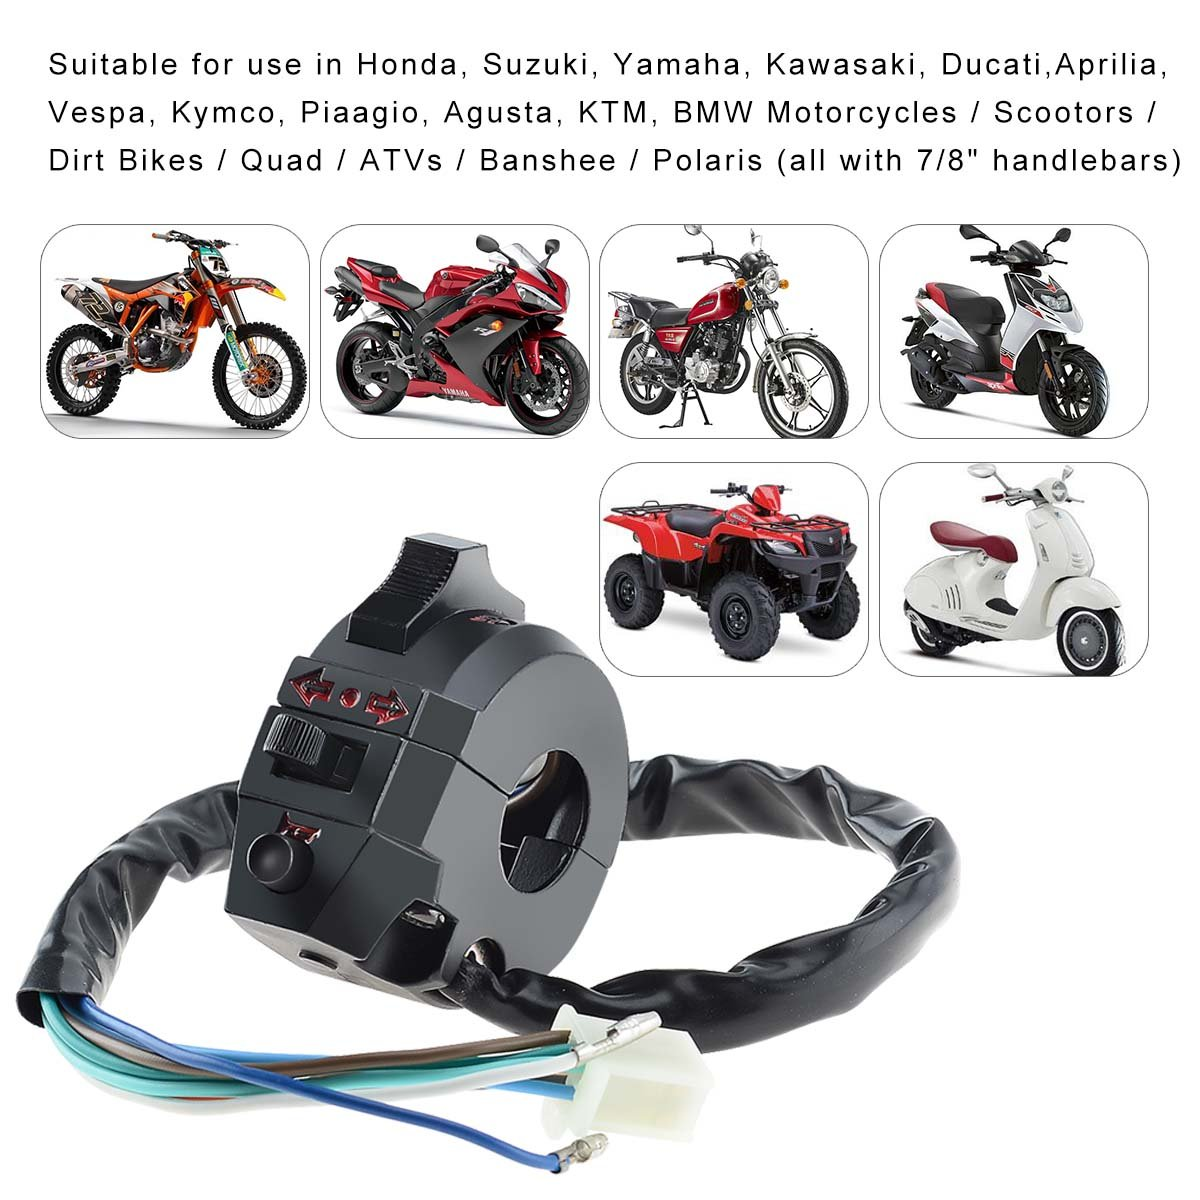 Kawell Switch Light Turn Signal Dirt Bike Honda Ktm Suzuki Kawasaki Yamaha Sport Motorcycle Universal 520 450 530 500 250 Wr Wrf Xr 600 650 Dr Drz